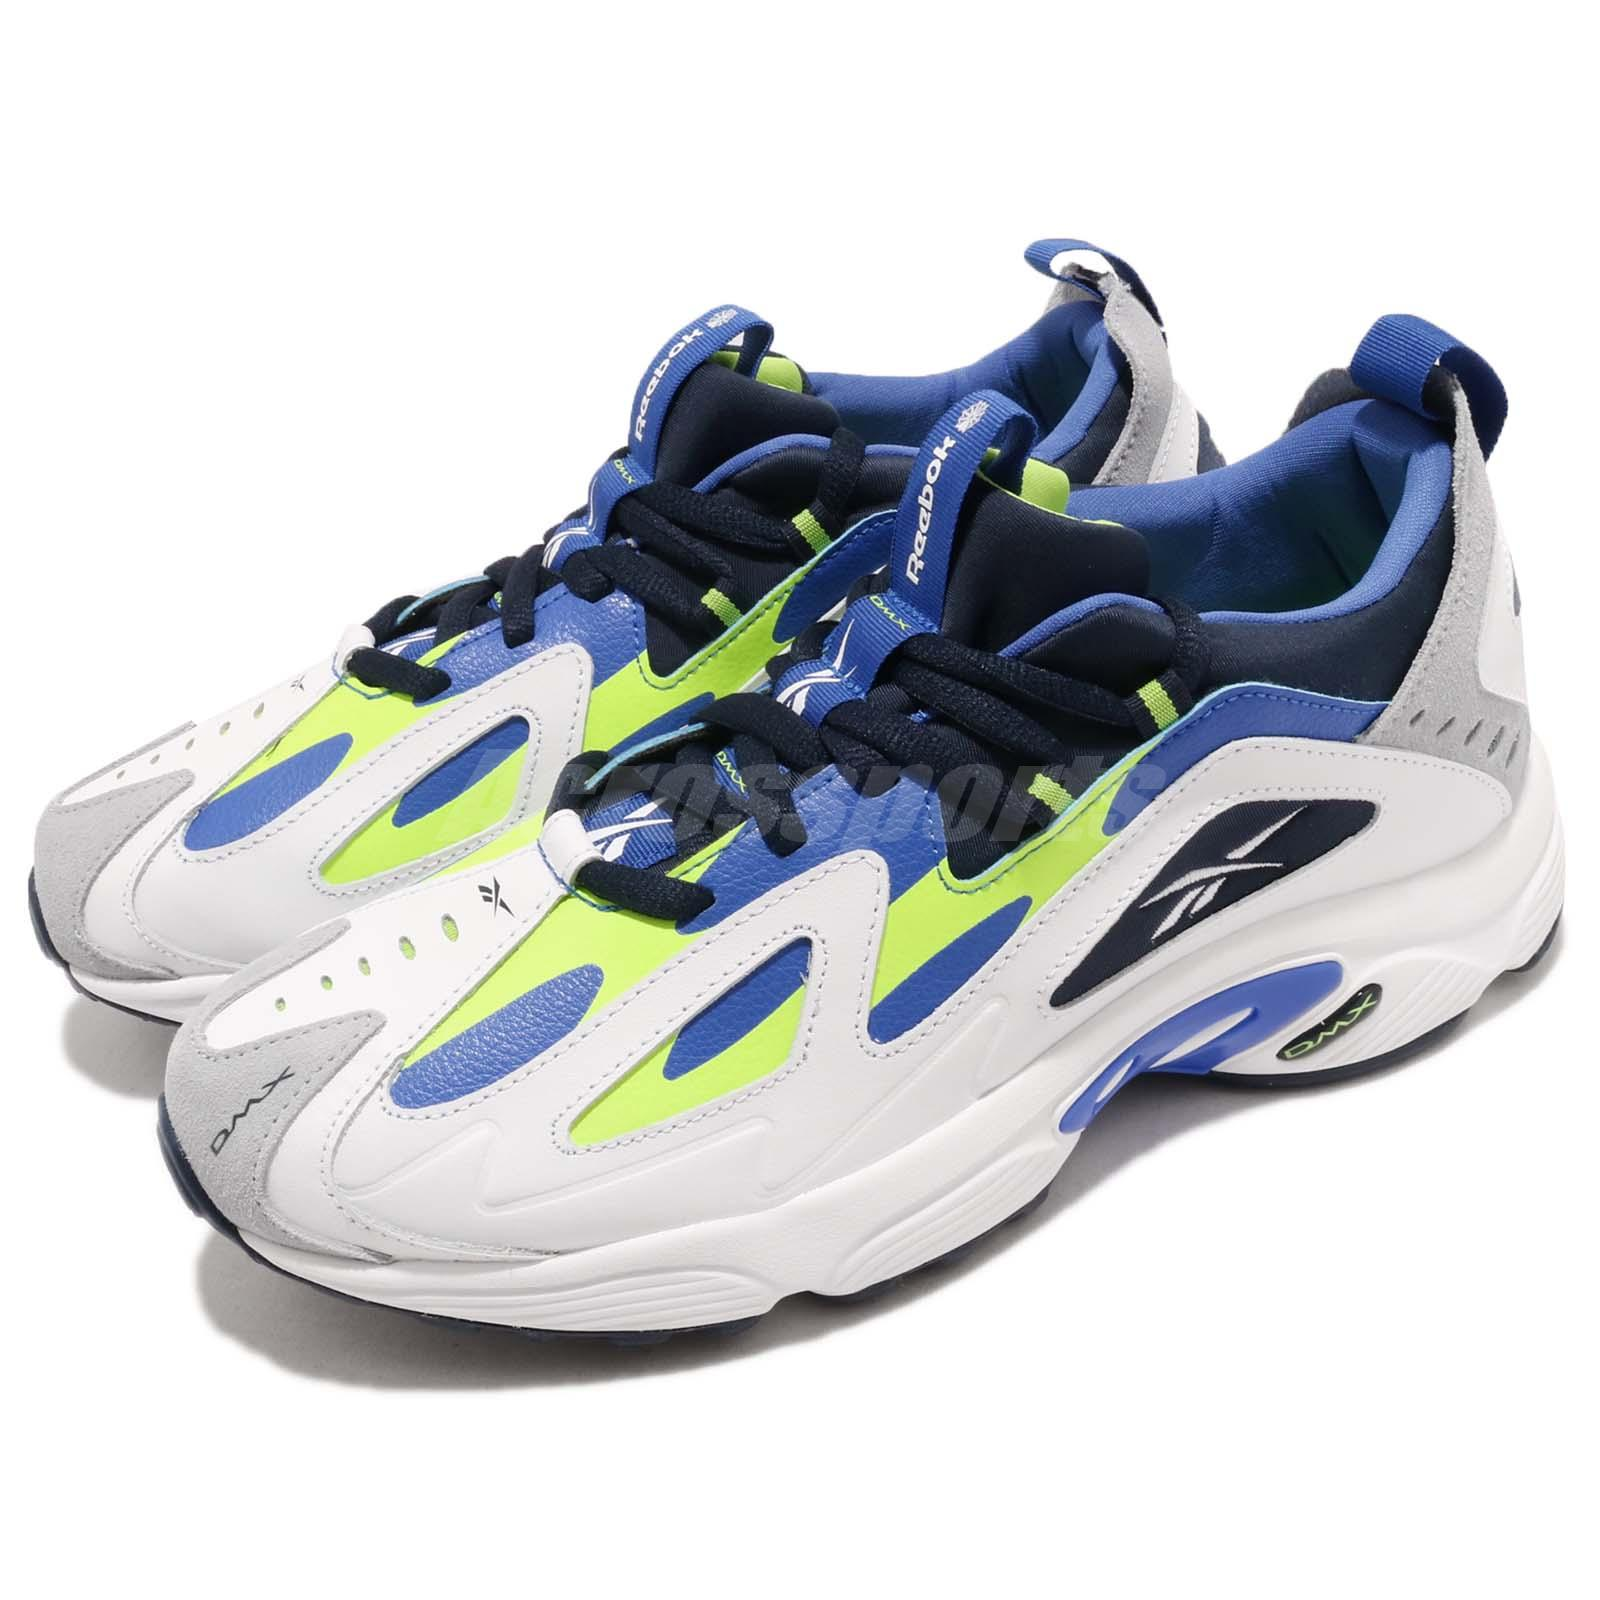 5468cf5c Reebok DMX Series 1200 White Lime Blue Men Running Daddy Shoes ...